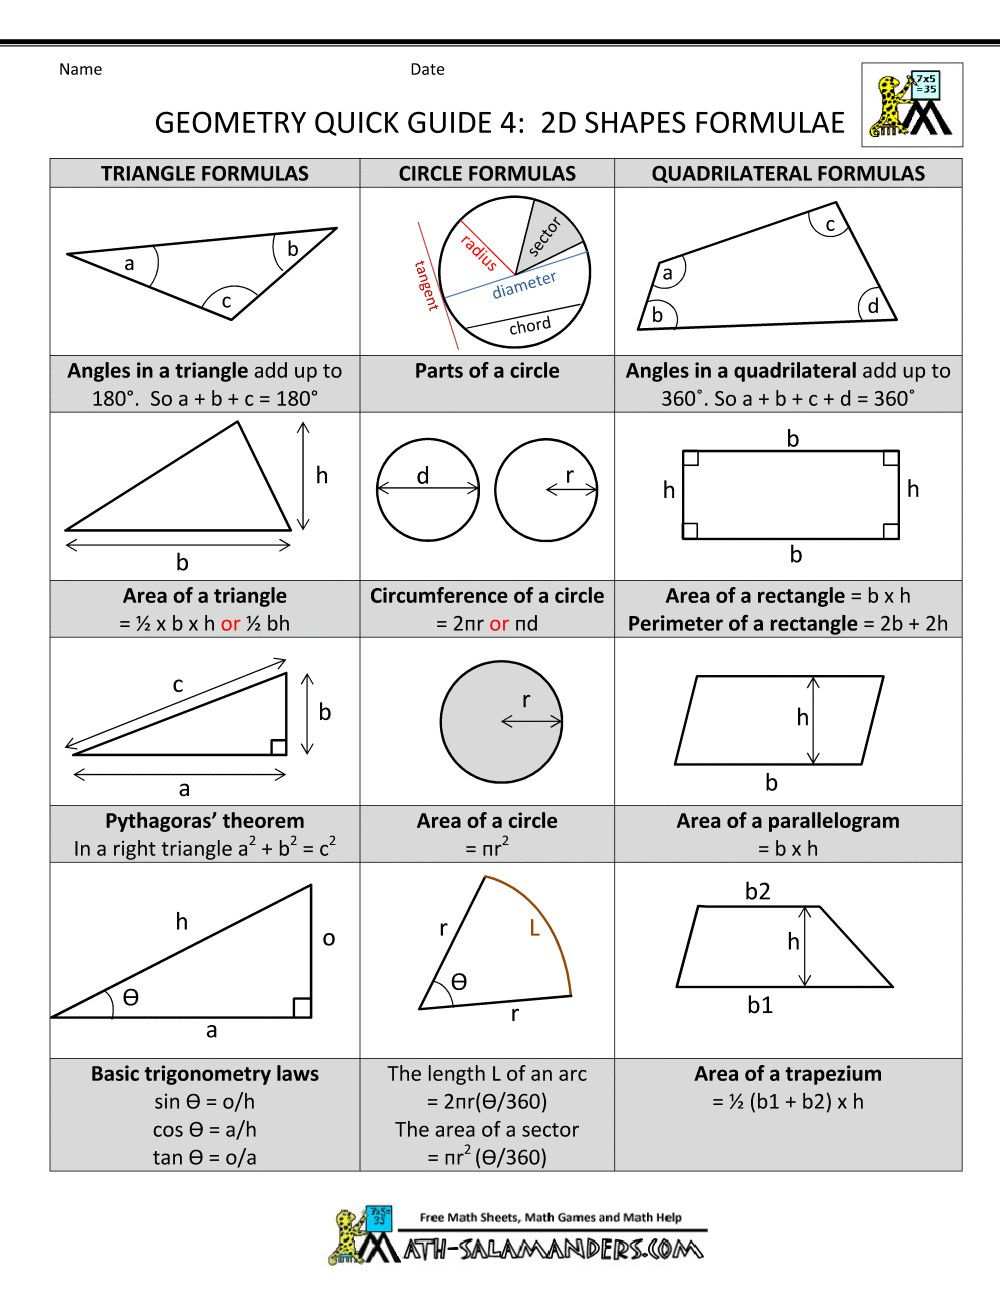 7 Finding Missing Angles Worksheet Answers In 2020 Math Worksheets Triangle Math Math Geometry